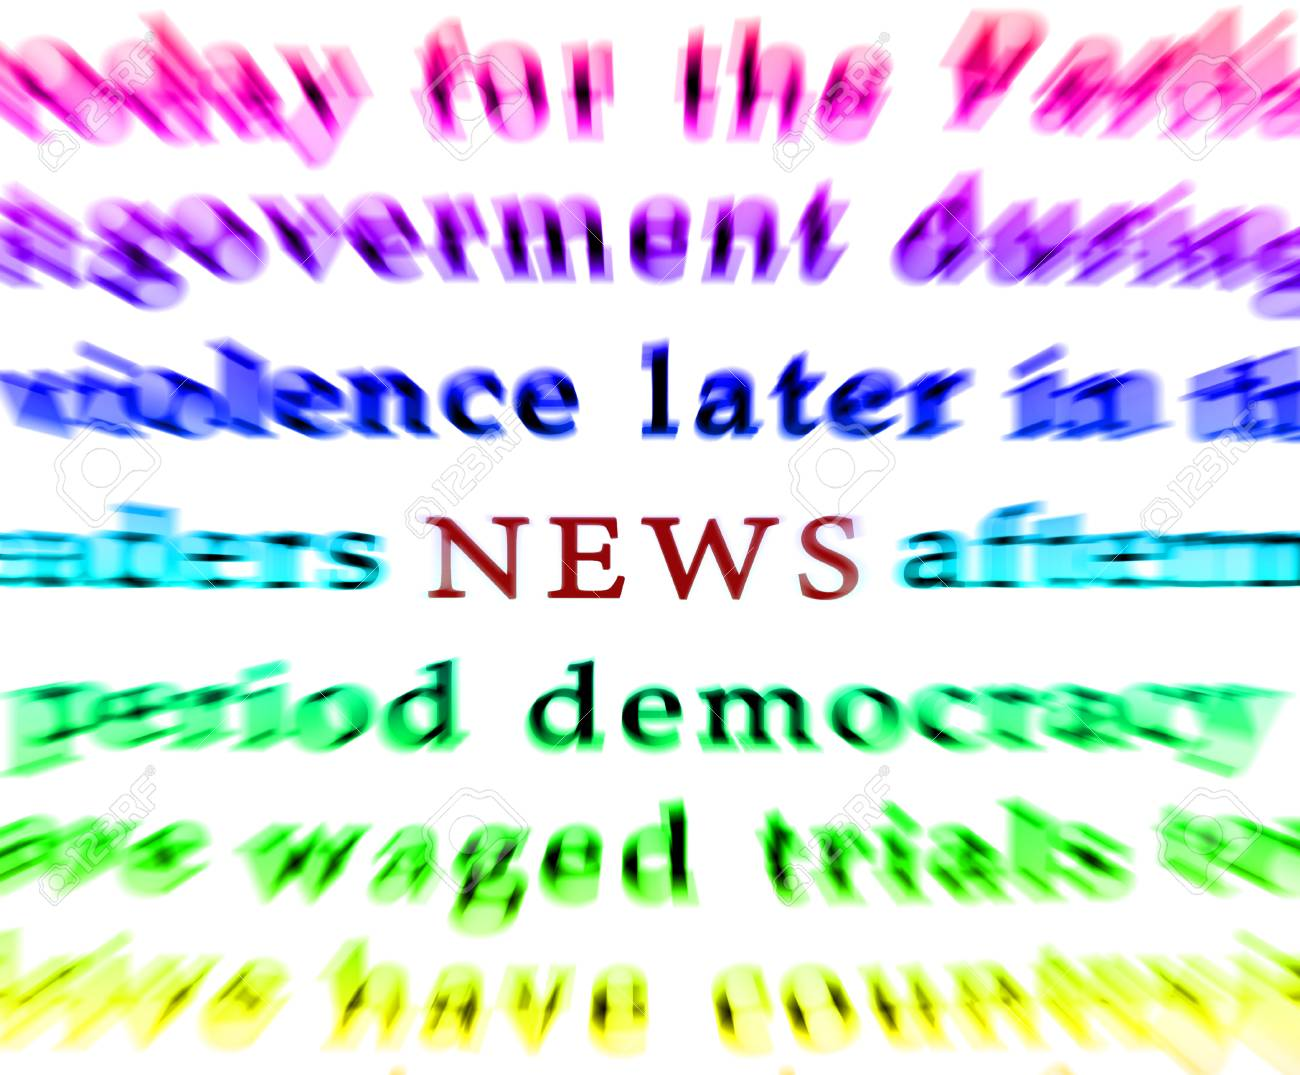 Newspaper isolated words news focus - 65575381